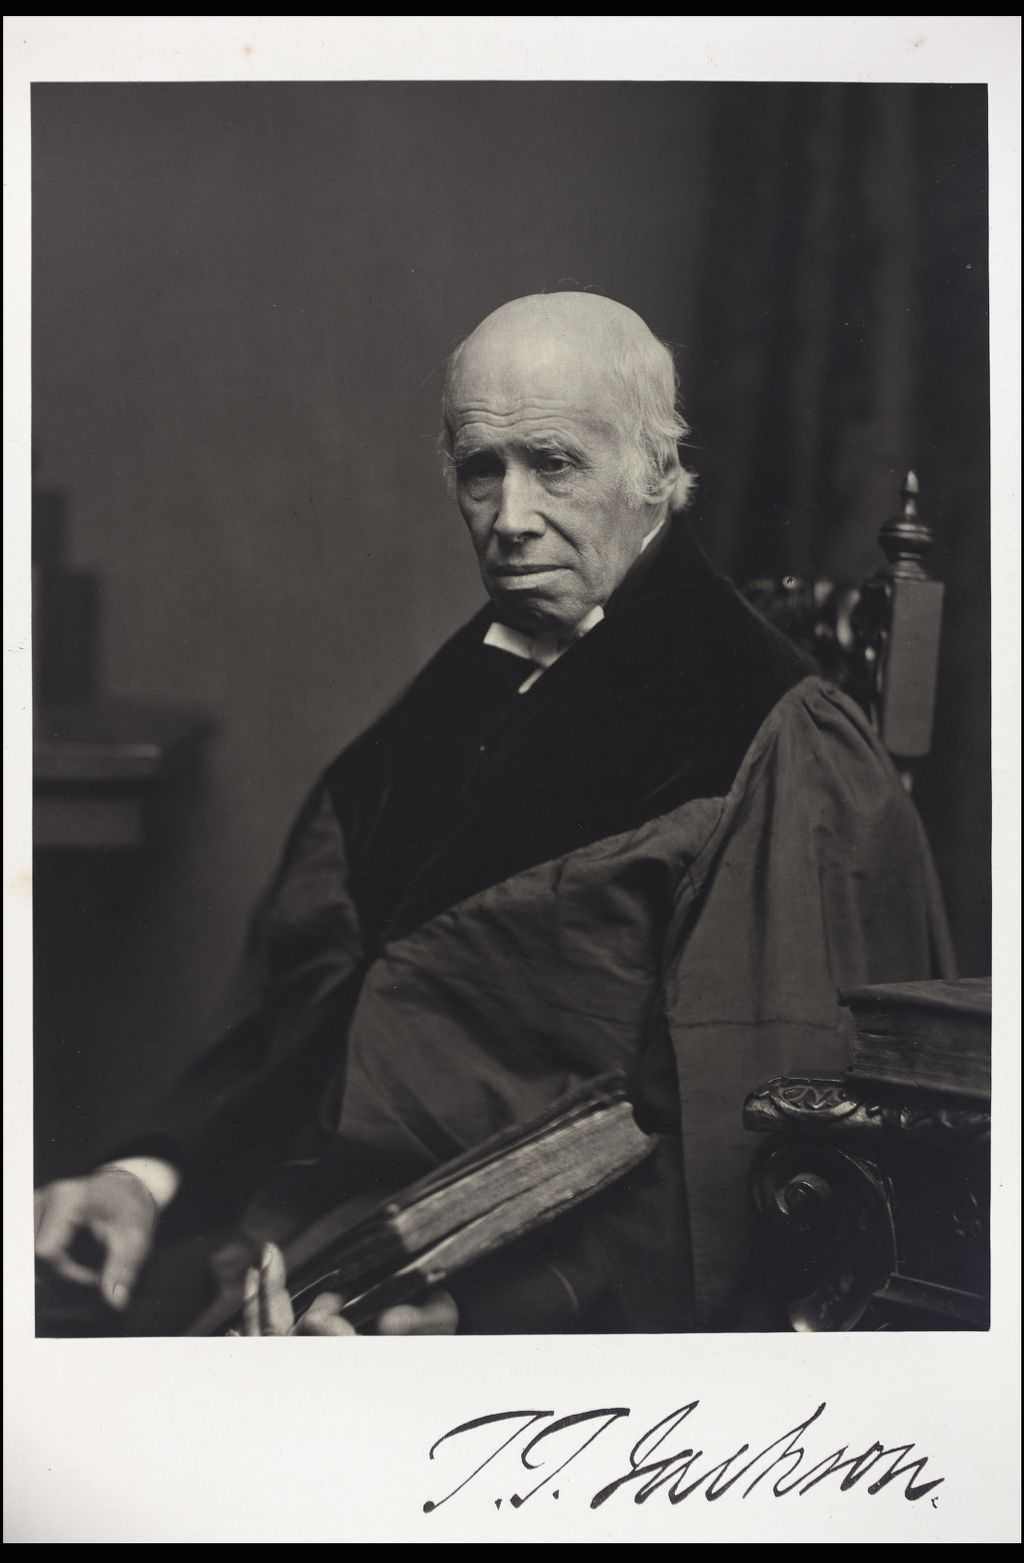 Thomas Thomson Jackson, DD, Professor of Ecclesiatical History, [University of Glasgow] Glasgow.